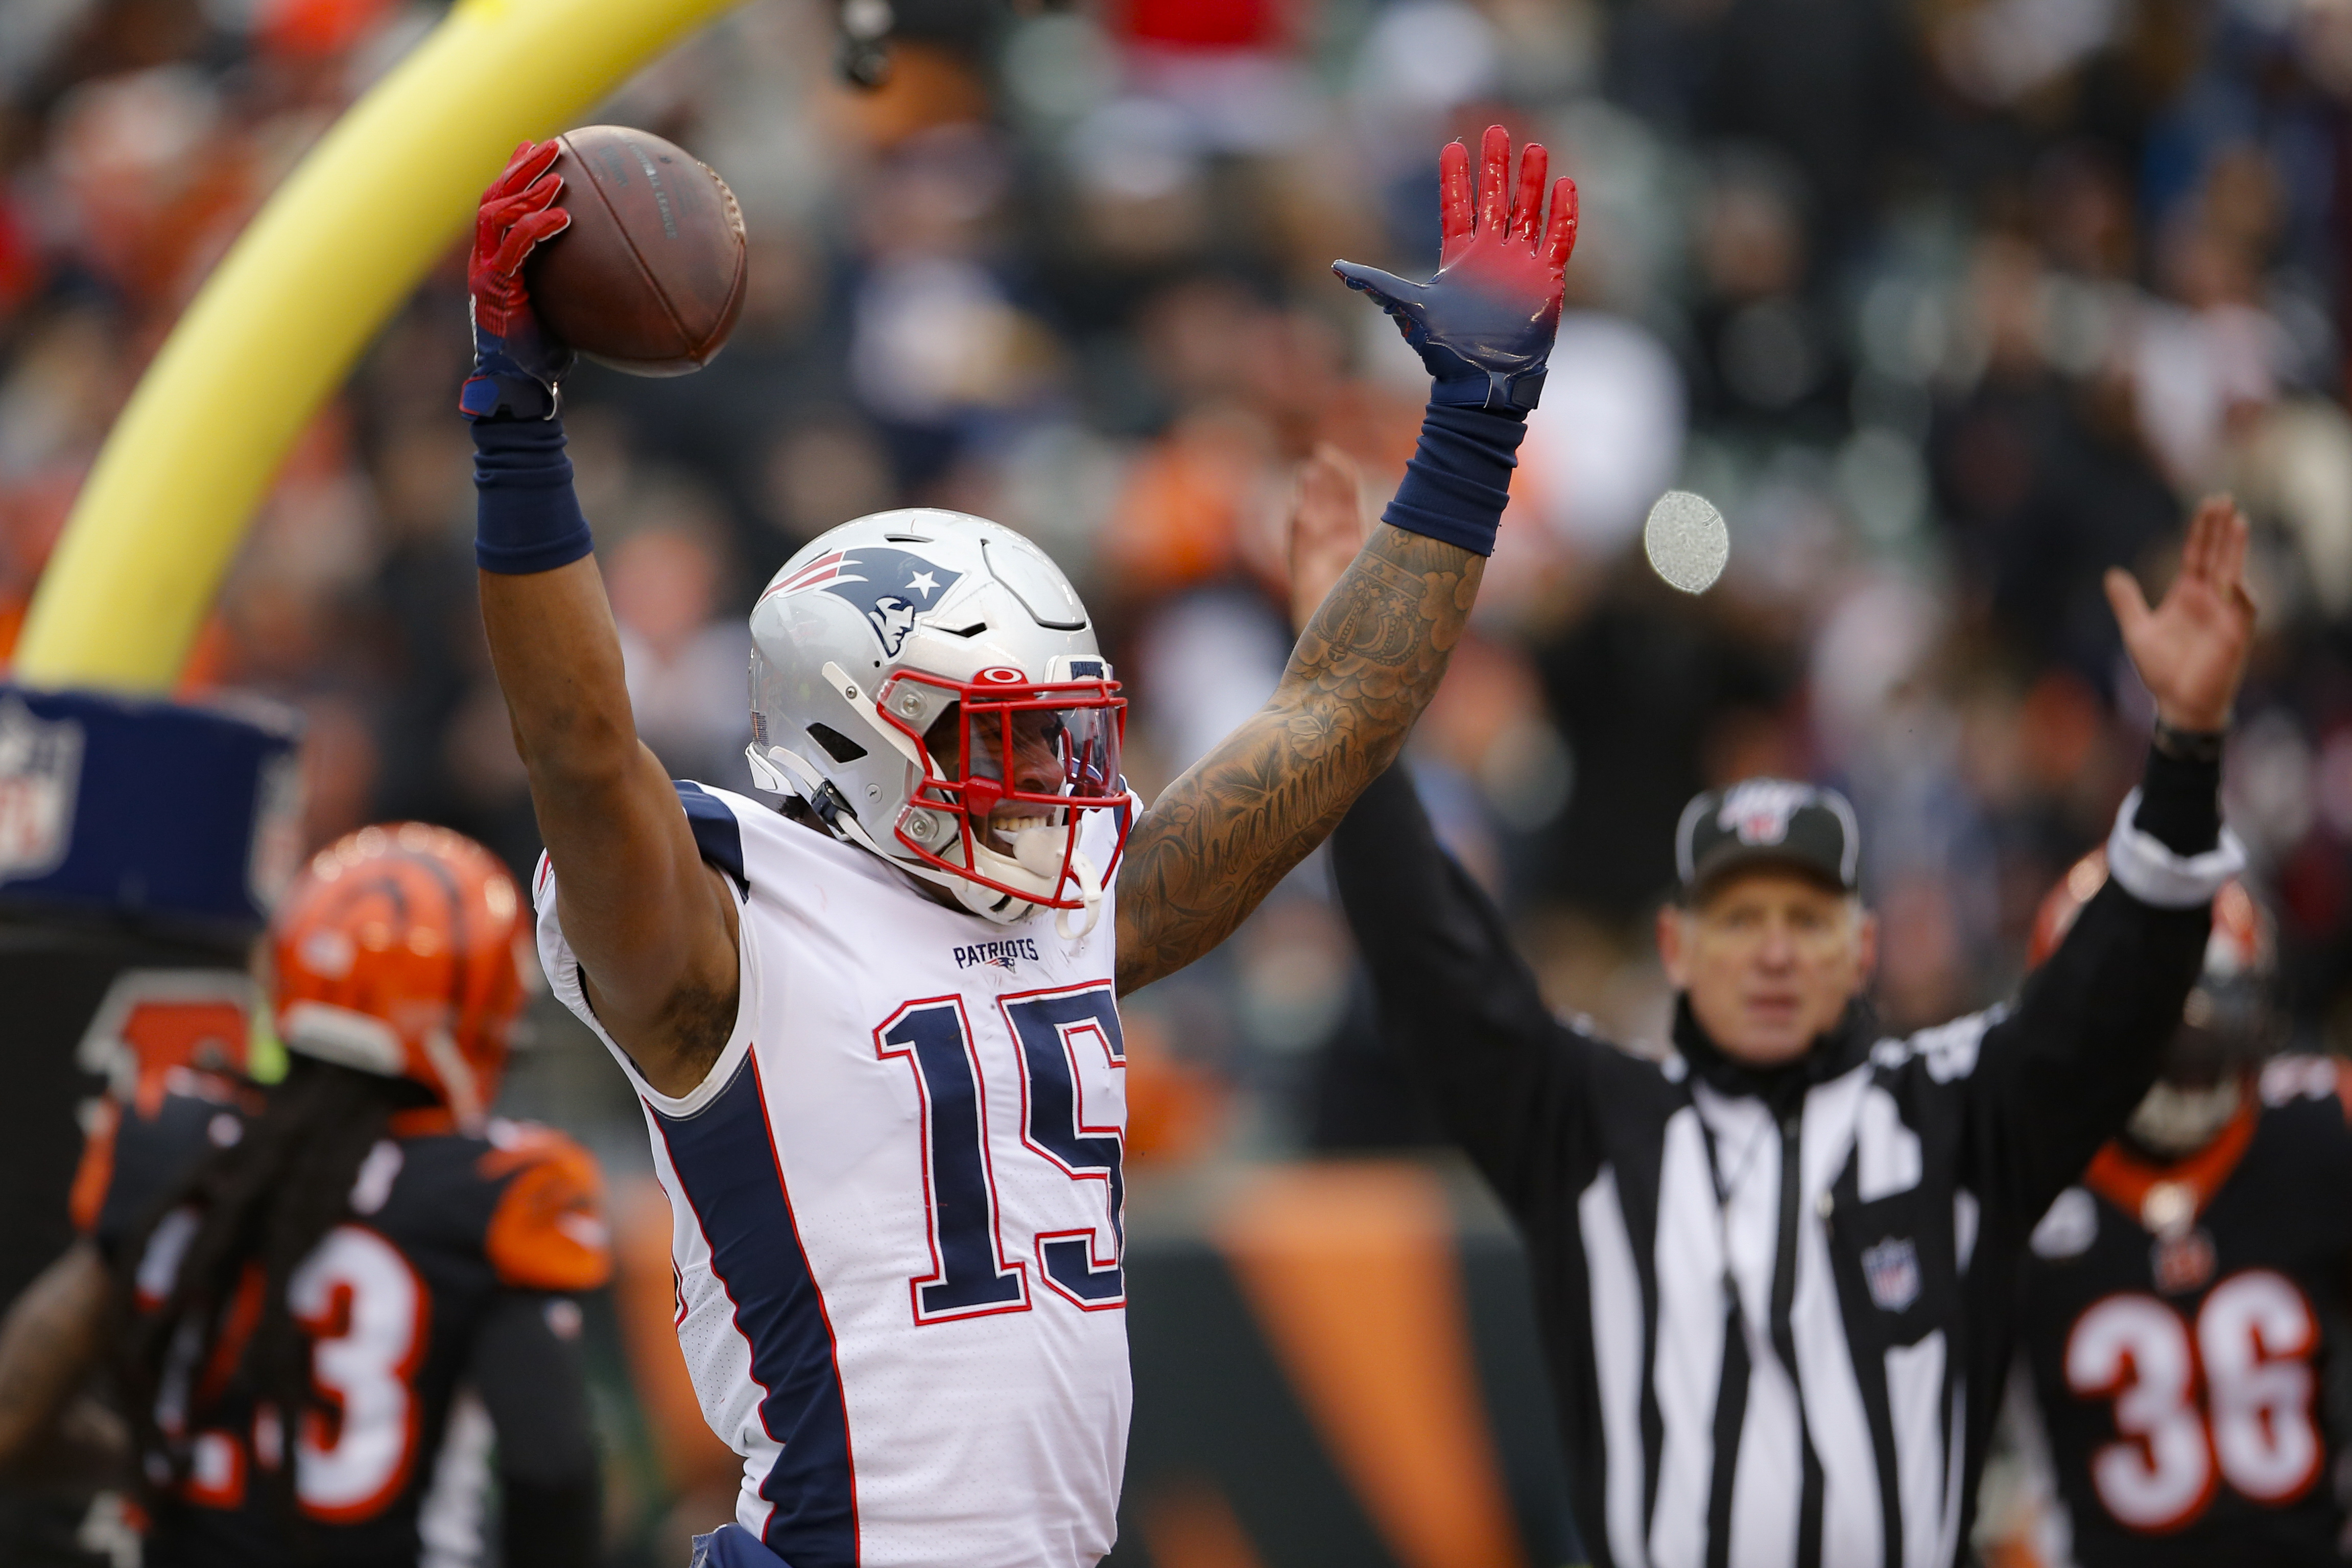 New England Patriots Clinch Playoff Berth After Win Over The Cincinnati Bengals Recap Score Stats And More Oregonlive Com We offer recommendations from over 100 fantasy football experts along with player statistics. https www oregonlive com nfl 2019 12 new england patriots vs cincinnati bengals live score updates tv channel how to watch free live stream online html